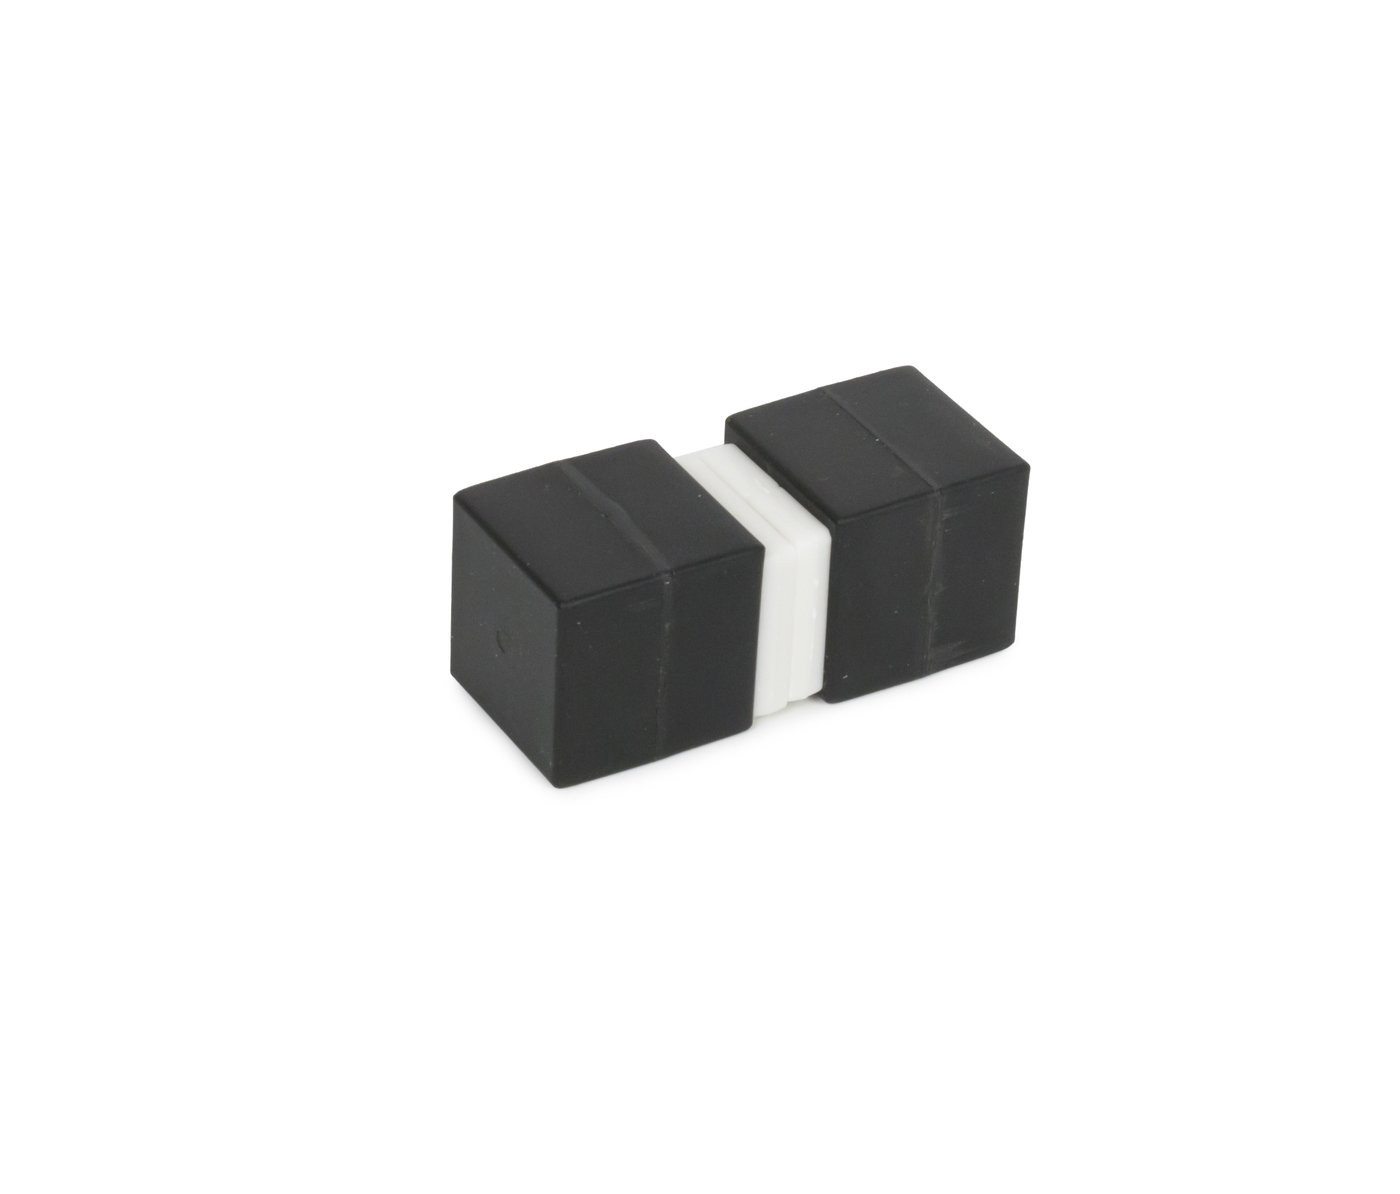 Unbreakable Plastic-Coated N52 Neodymium Cube Magnets, Waterproof, 1 x 1 x 1 inch. 2-Pack. Revitalizaire Strong Permanent NdFeB Rare Earth Magnets Coated with Hard Black Polypropylene by Revitalizaire (Image #4)